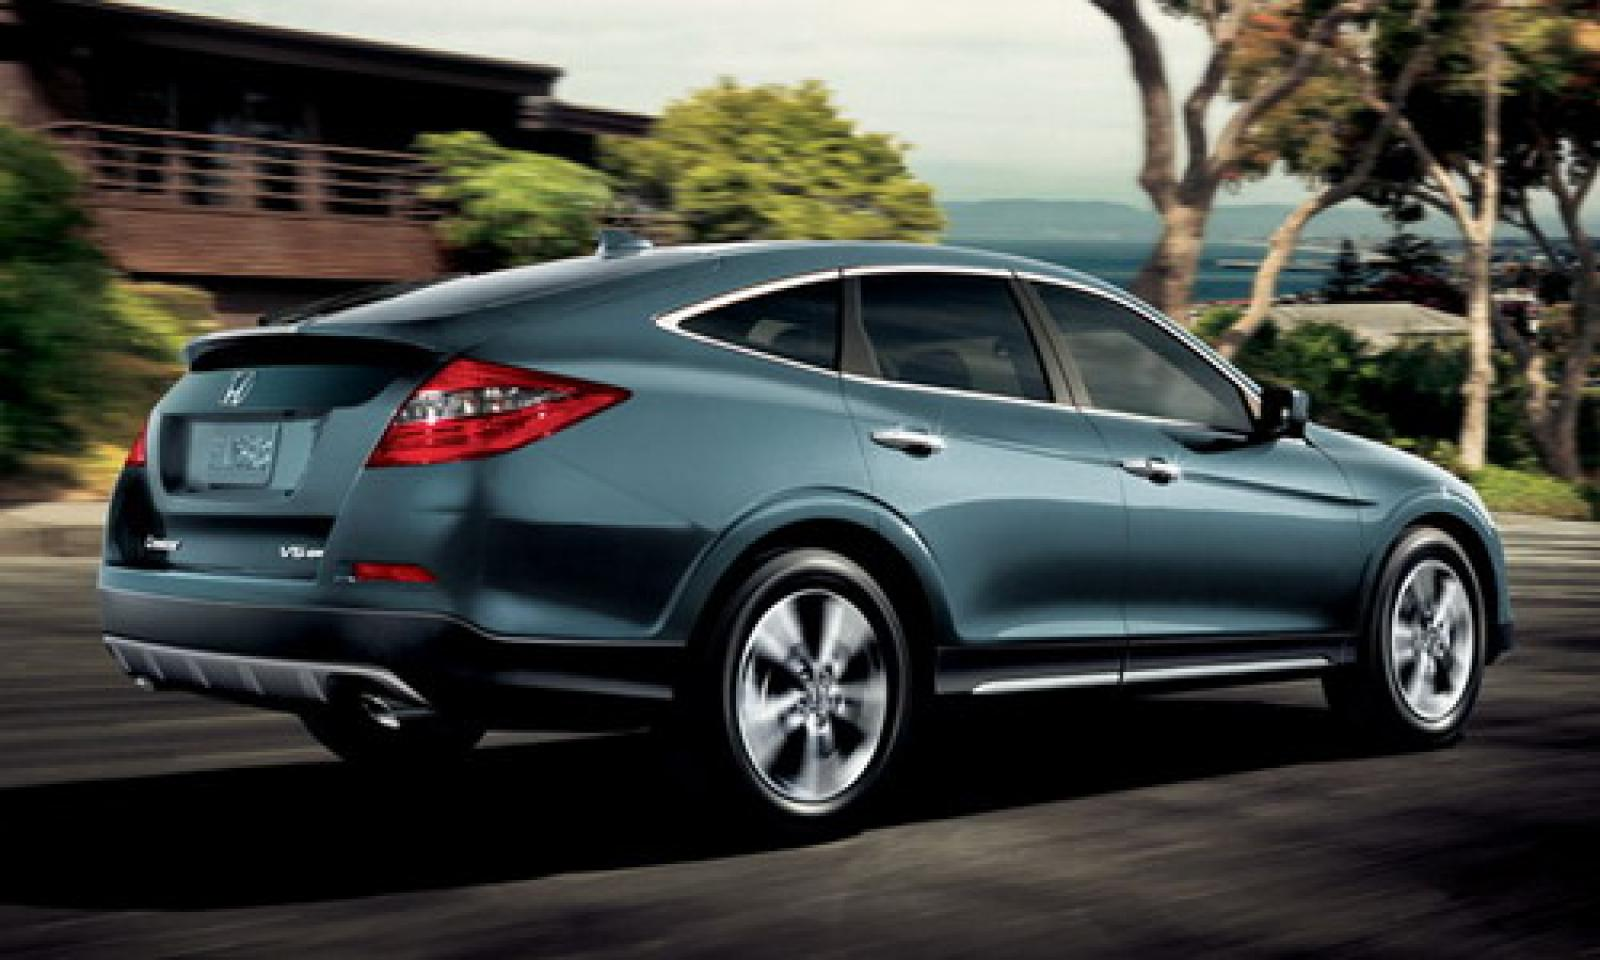 2015 honda crosstour information and photos zombiedrive